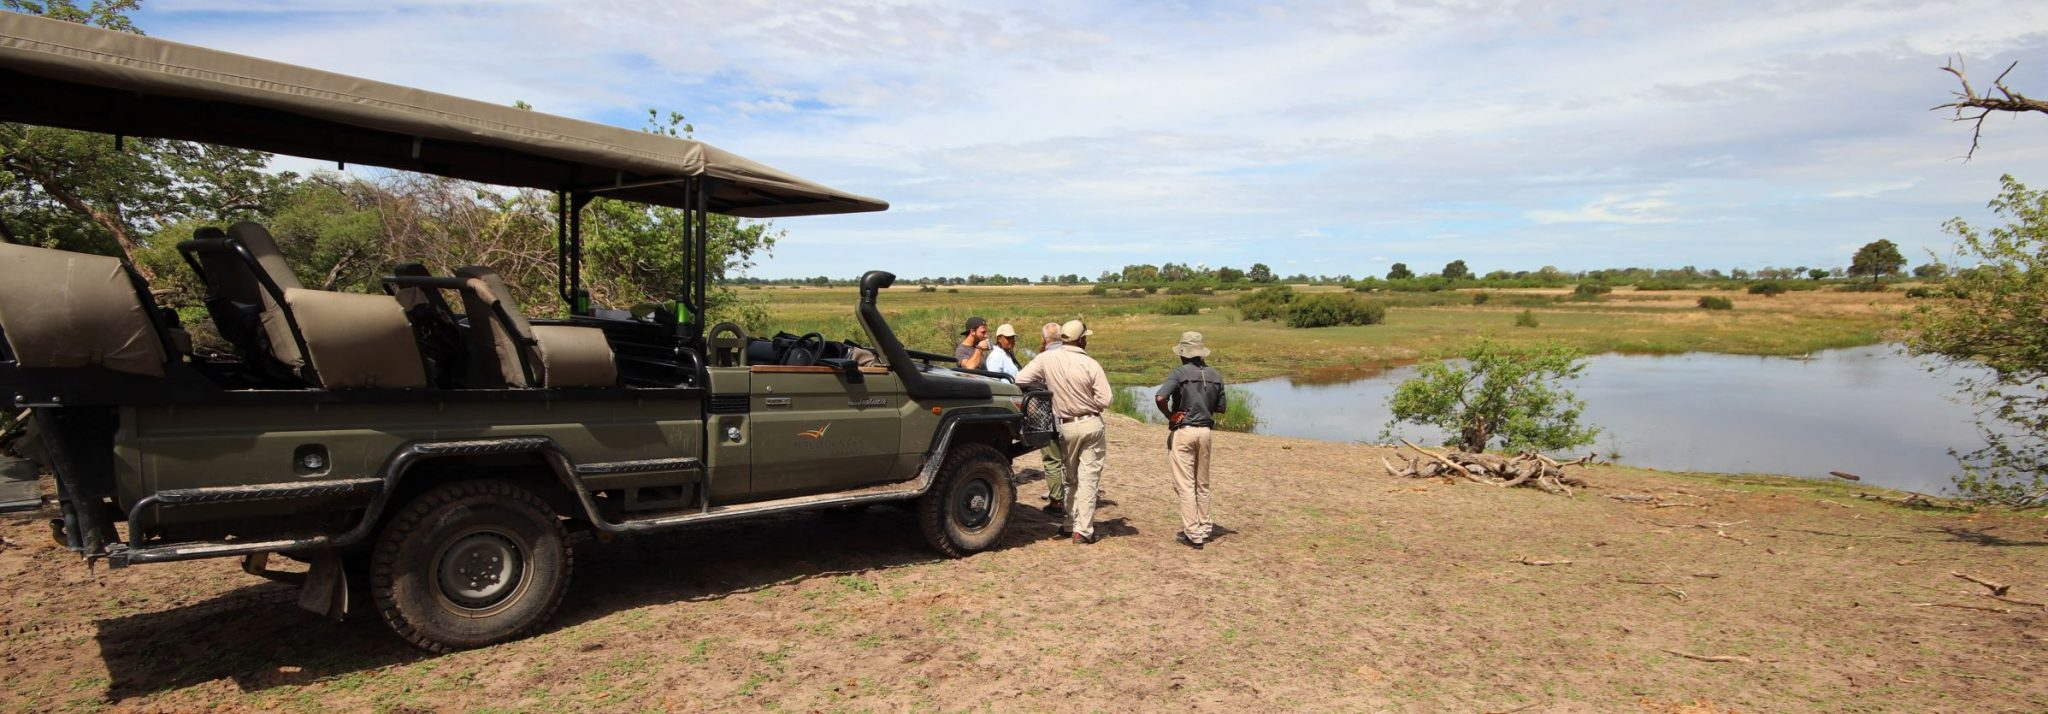 Guided safari Botswana